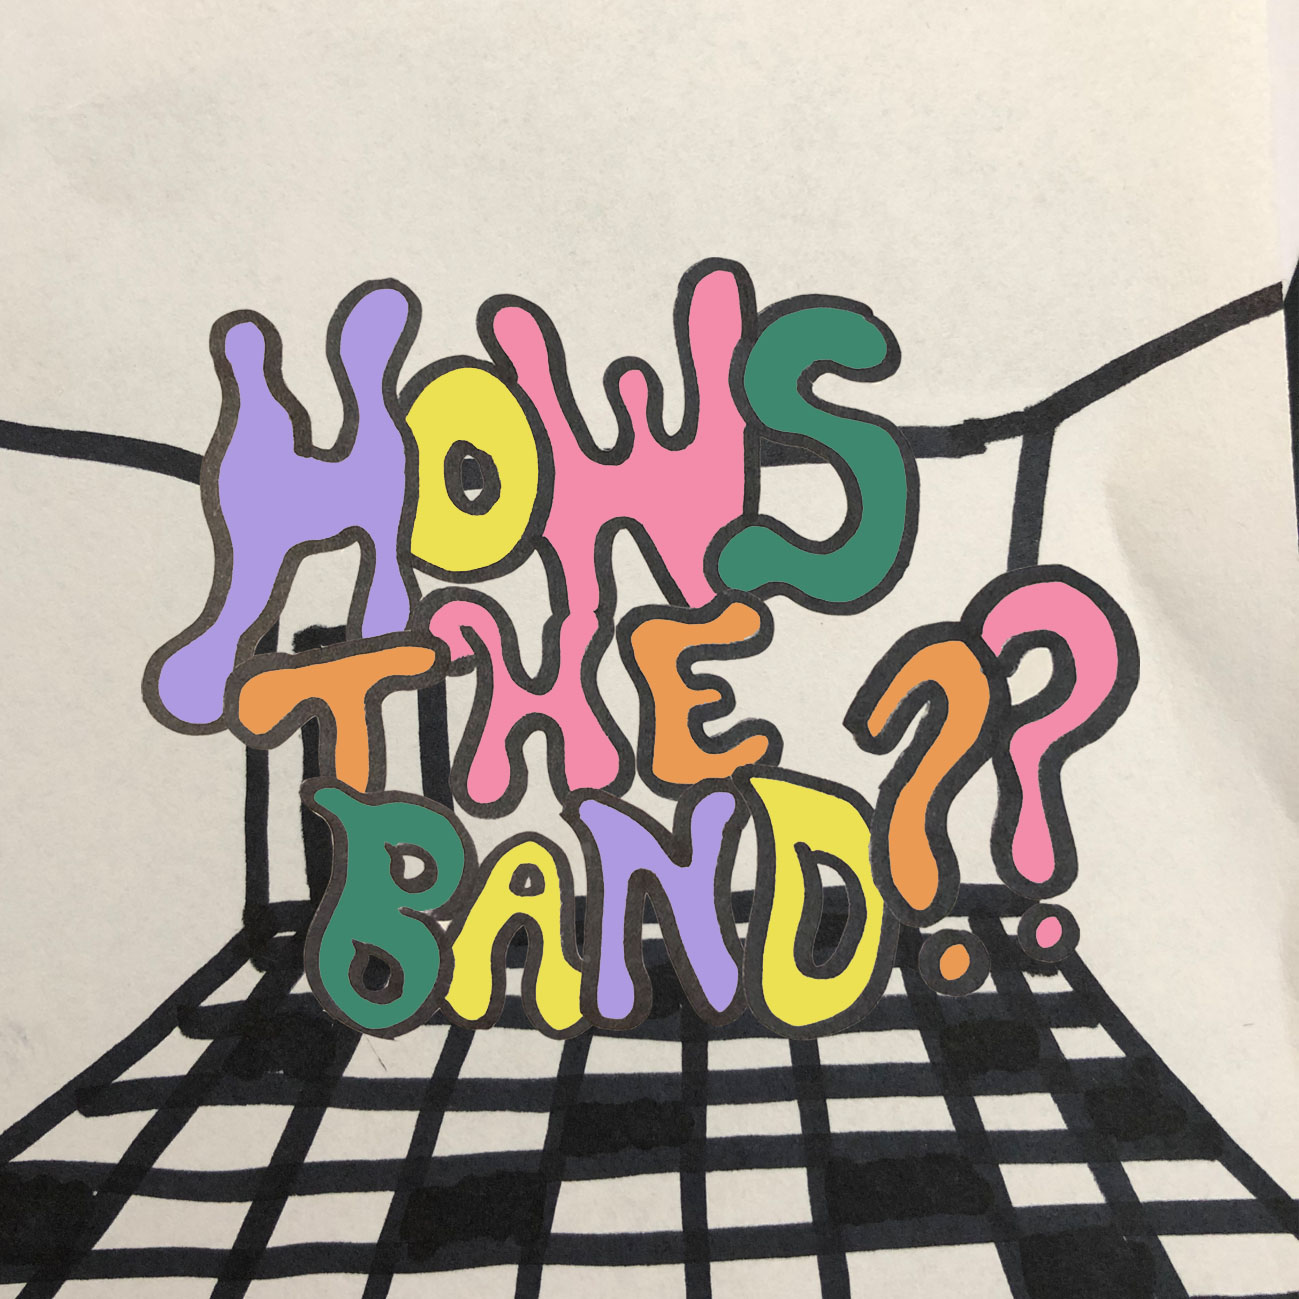 How's The Band? Episode 28 - New Jobs and the work/band balance